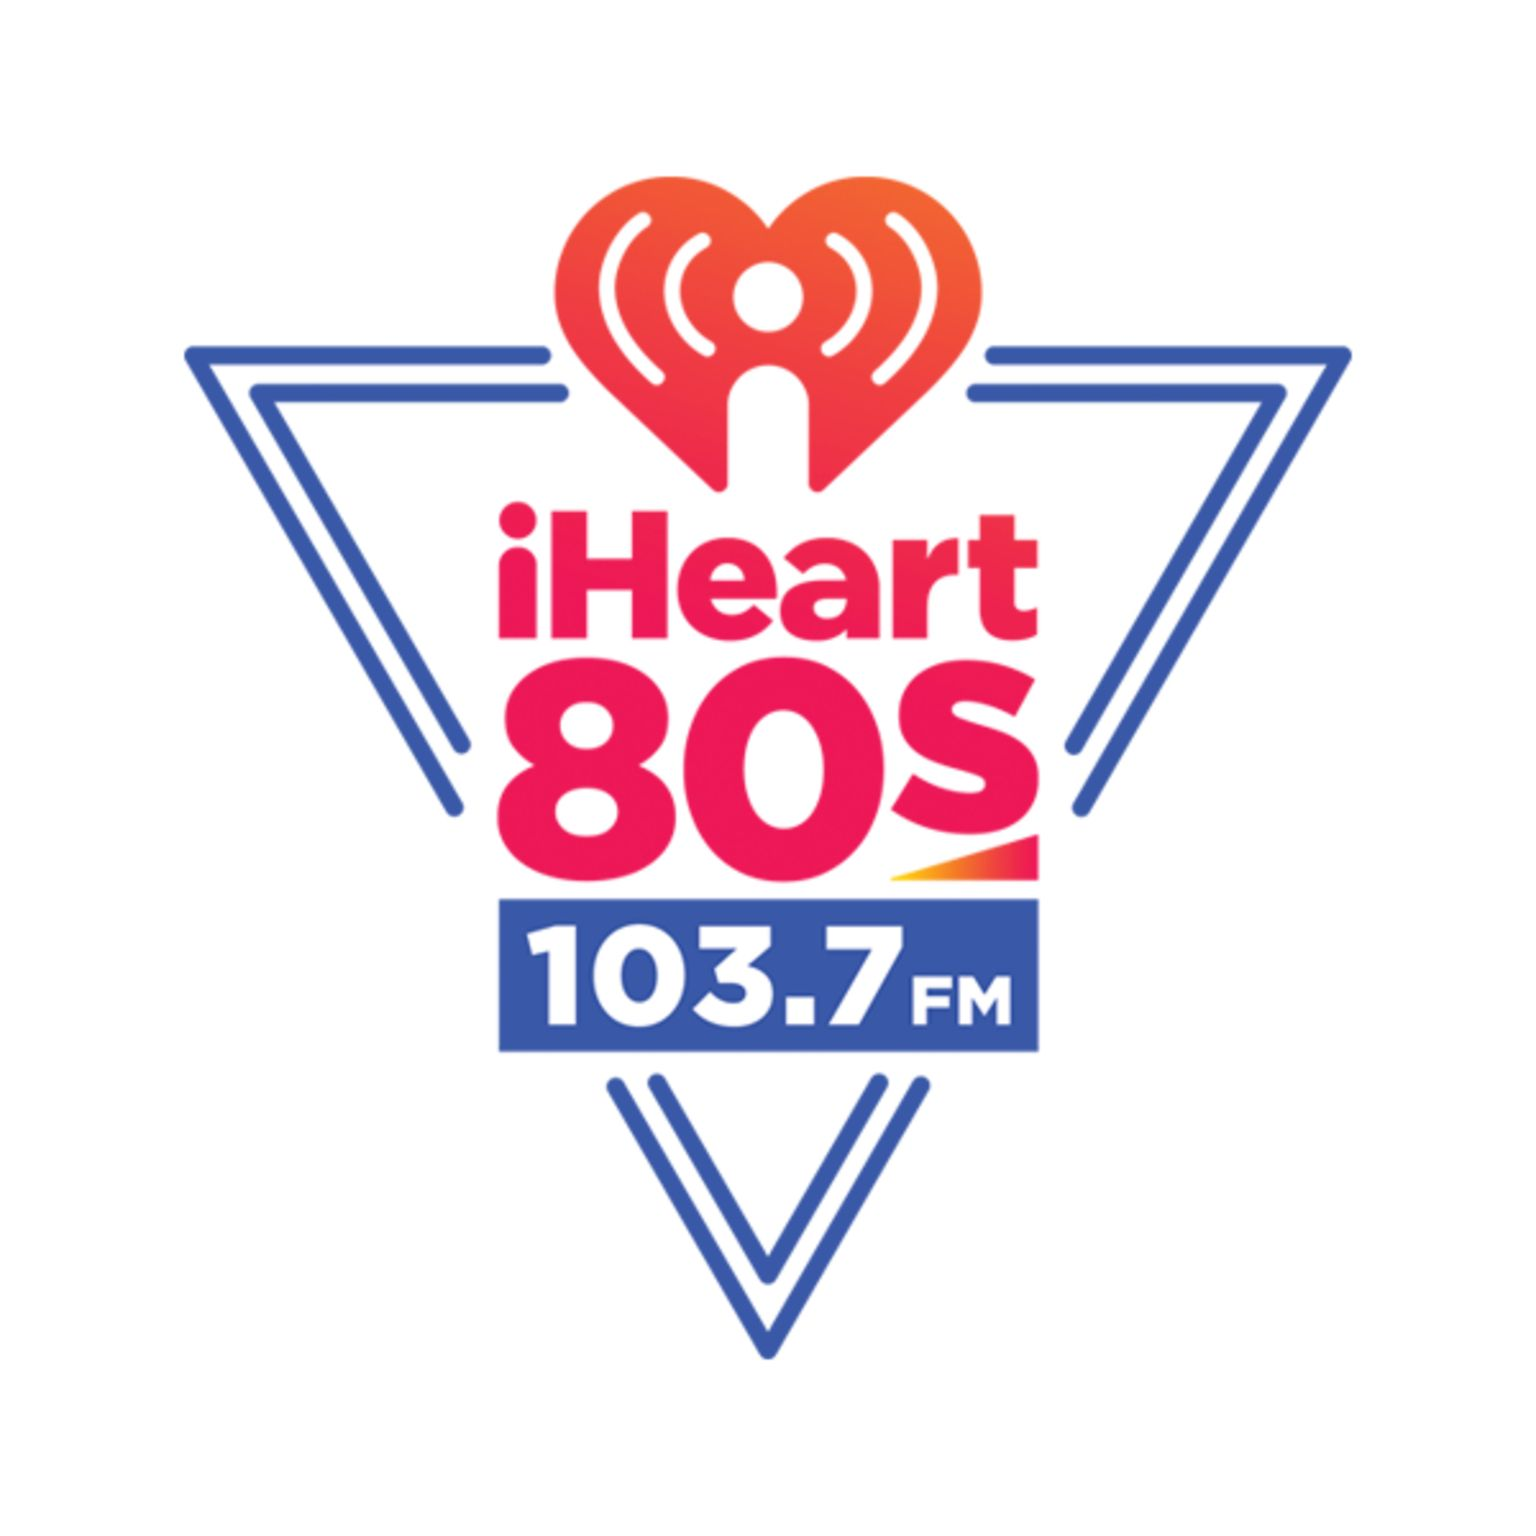 I\'m listening to iHeart80s Radio 103.7, Get your 80s fix - San ...